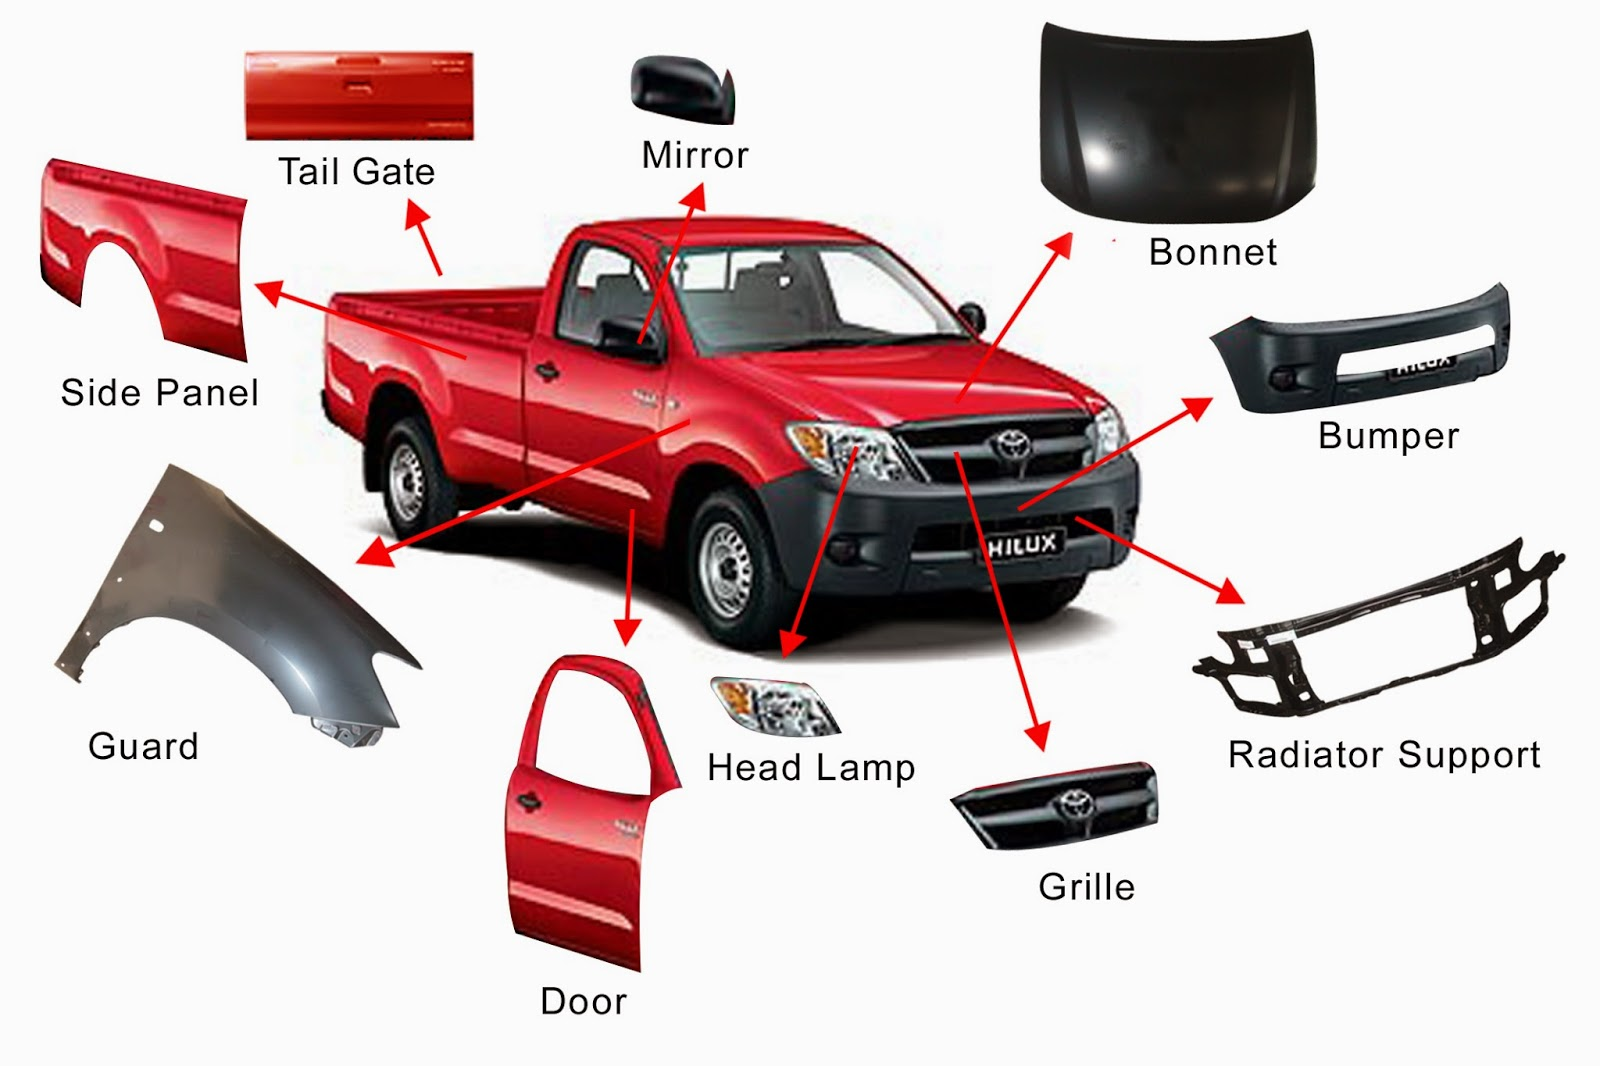 Interior Car Parts In English | Billingsblessingbags.org